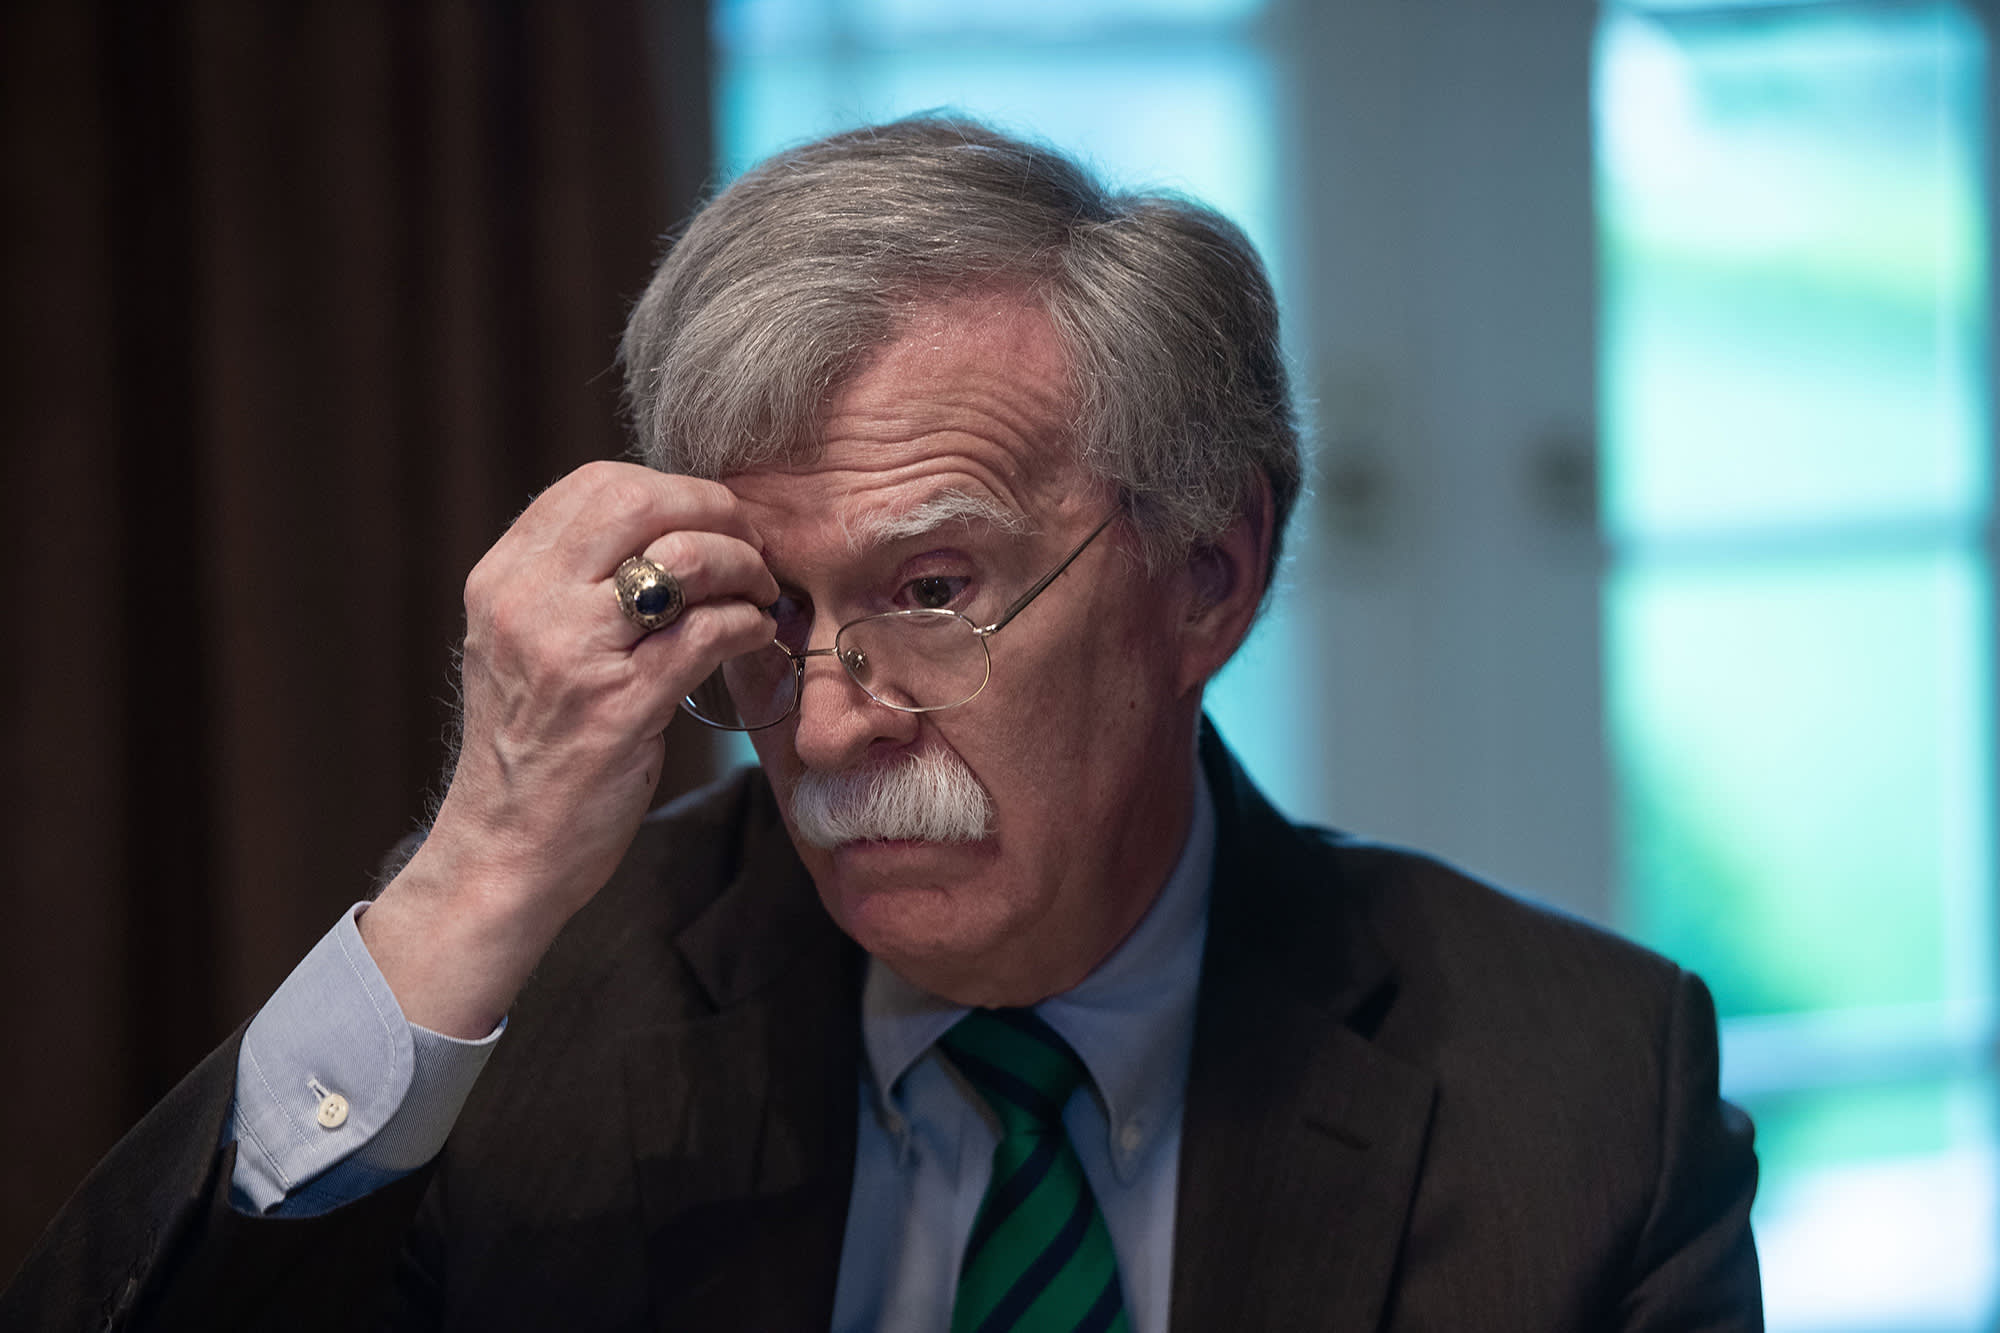 North Korean missile test violated UN resolution, Bolton says